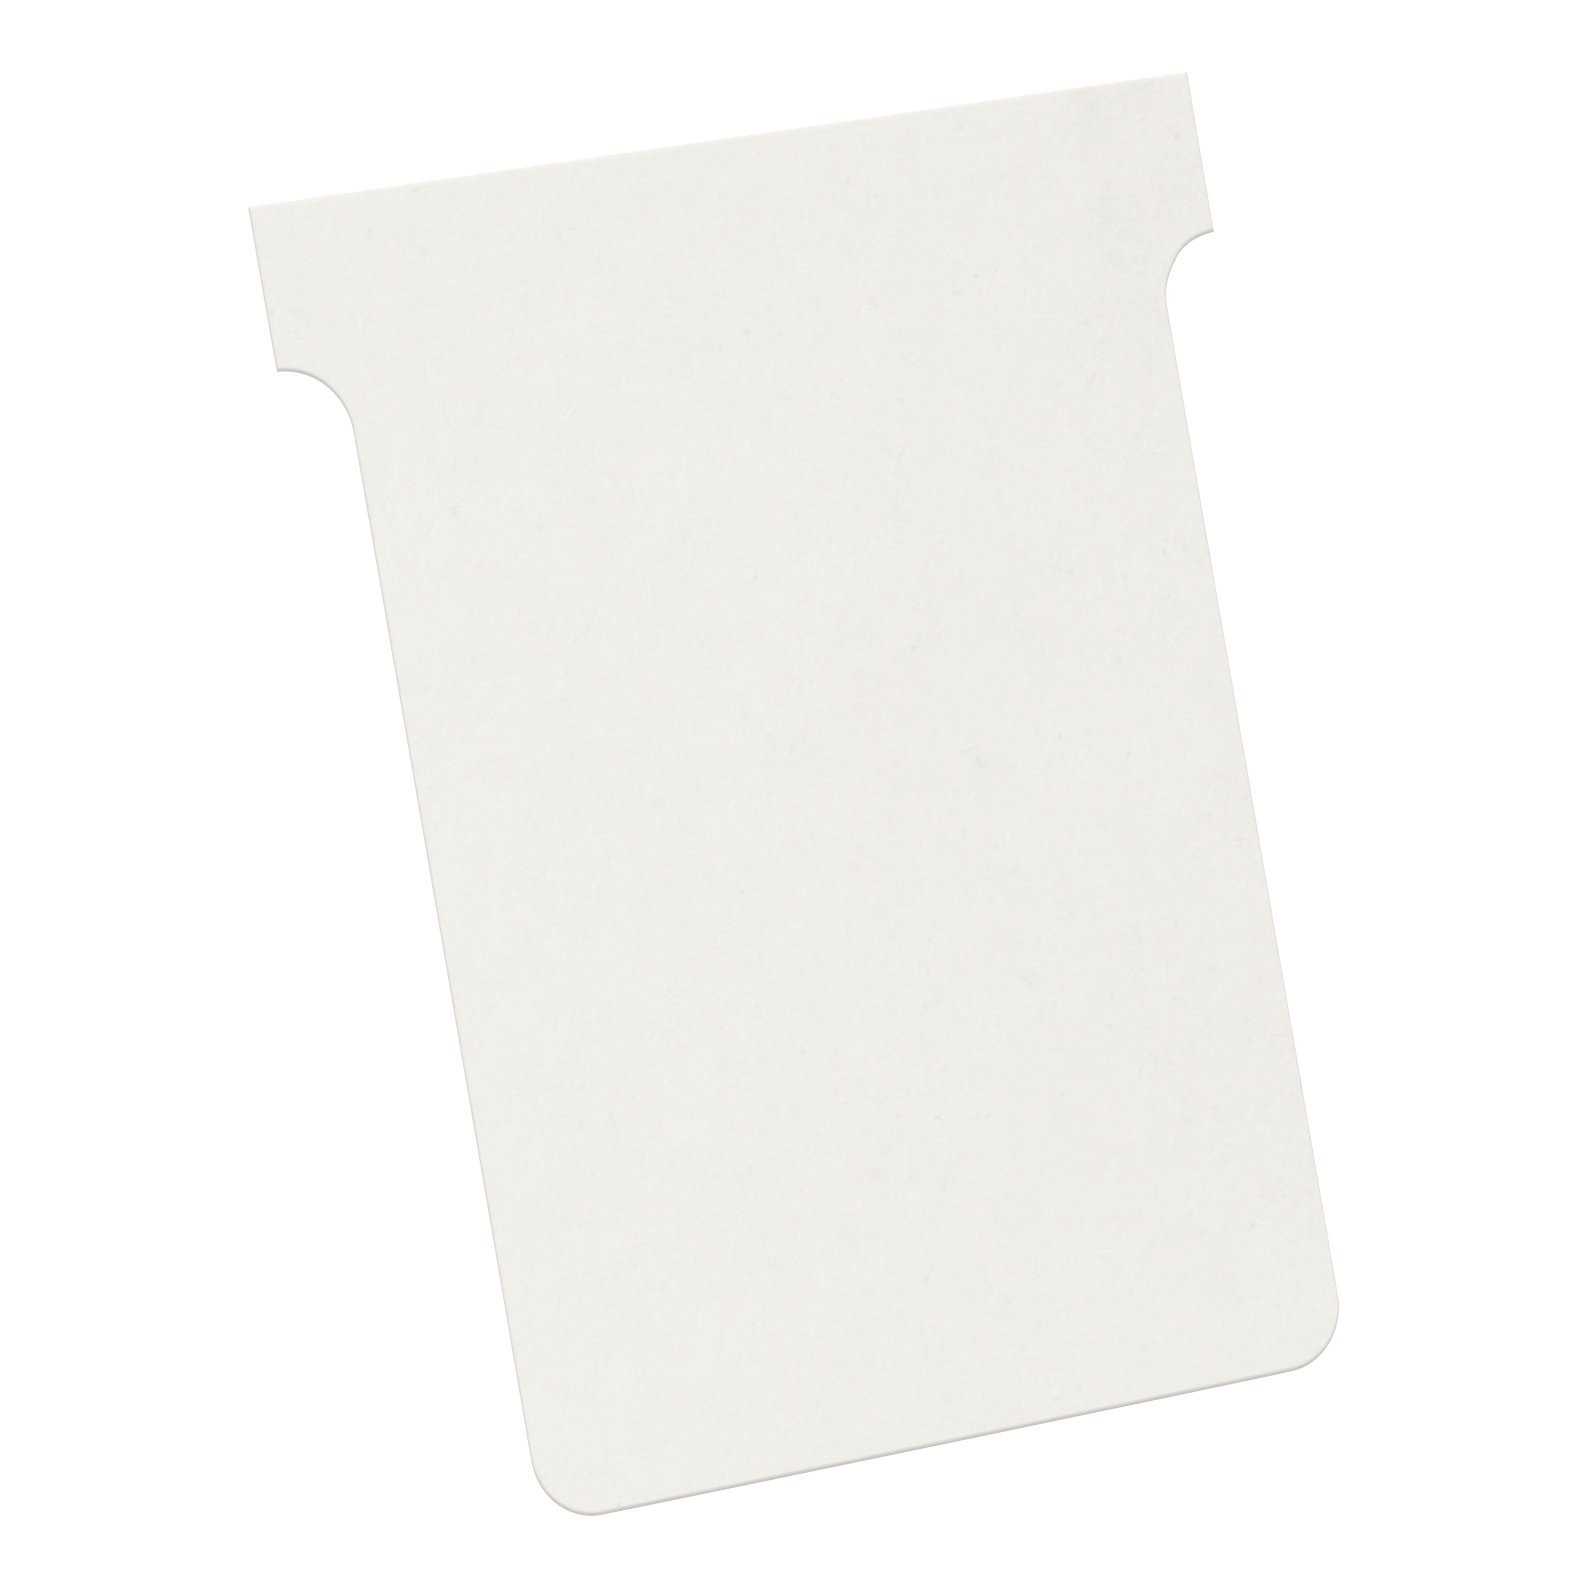 T Cards Nobo T-Cards 160gsm Tab Top 15mm W92x Bottom W80x Full H120mm Size 3 White Ref 2003002 Pack 100